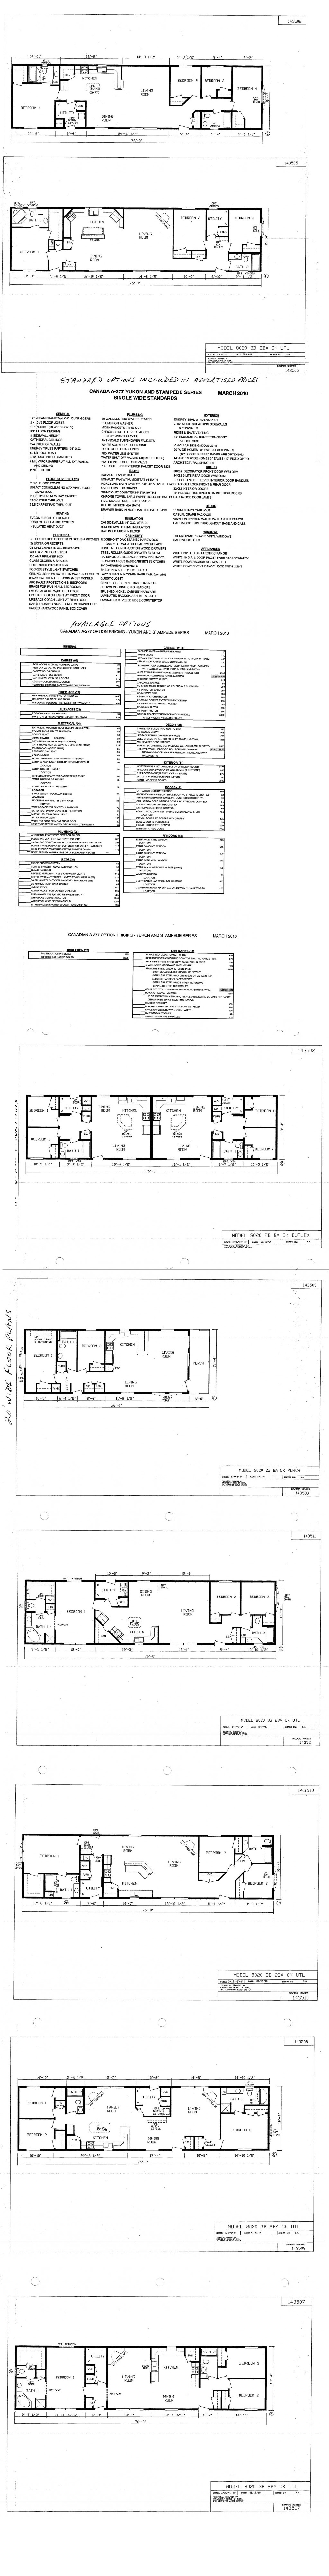 20ft floorplans page